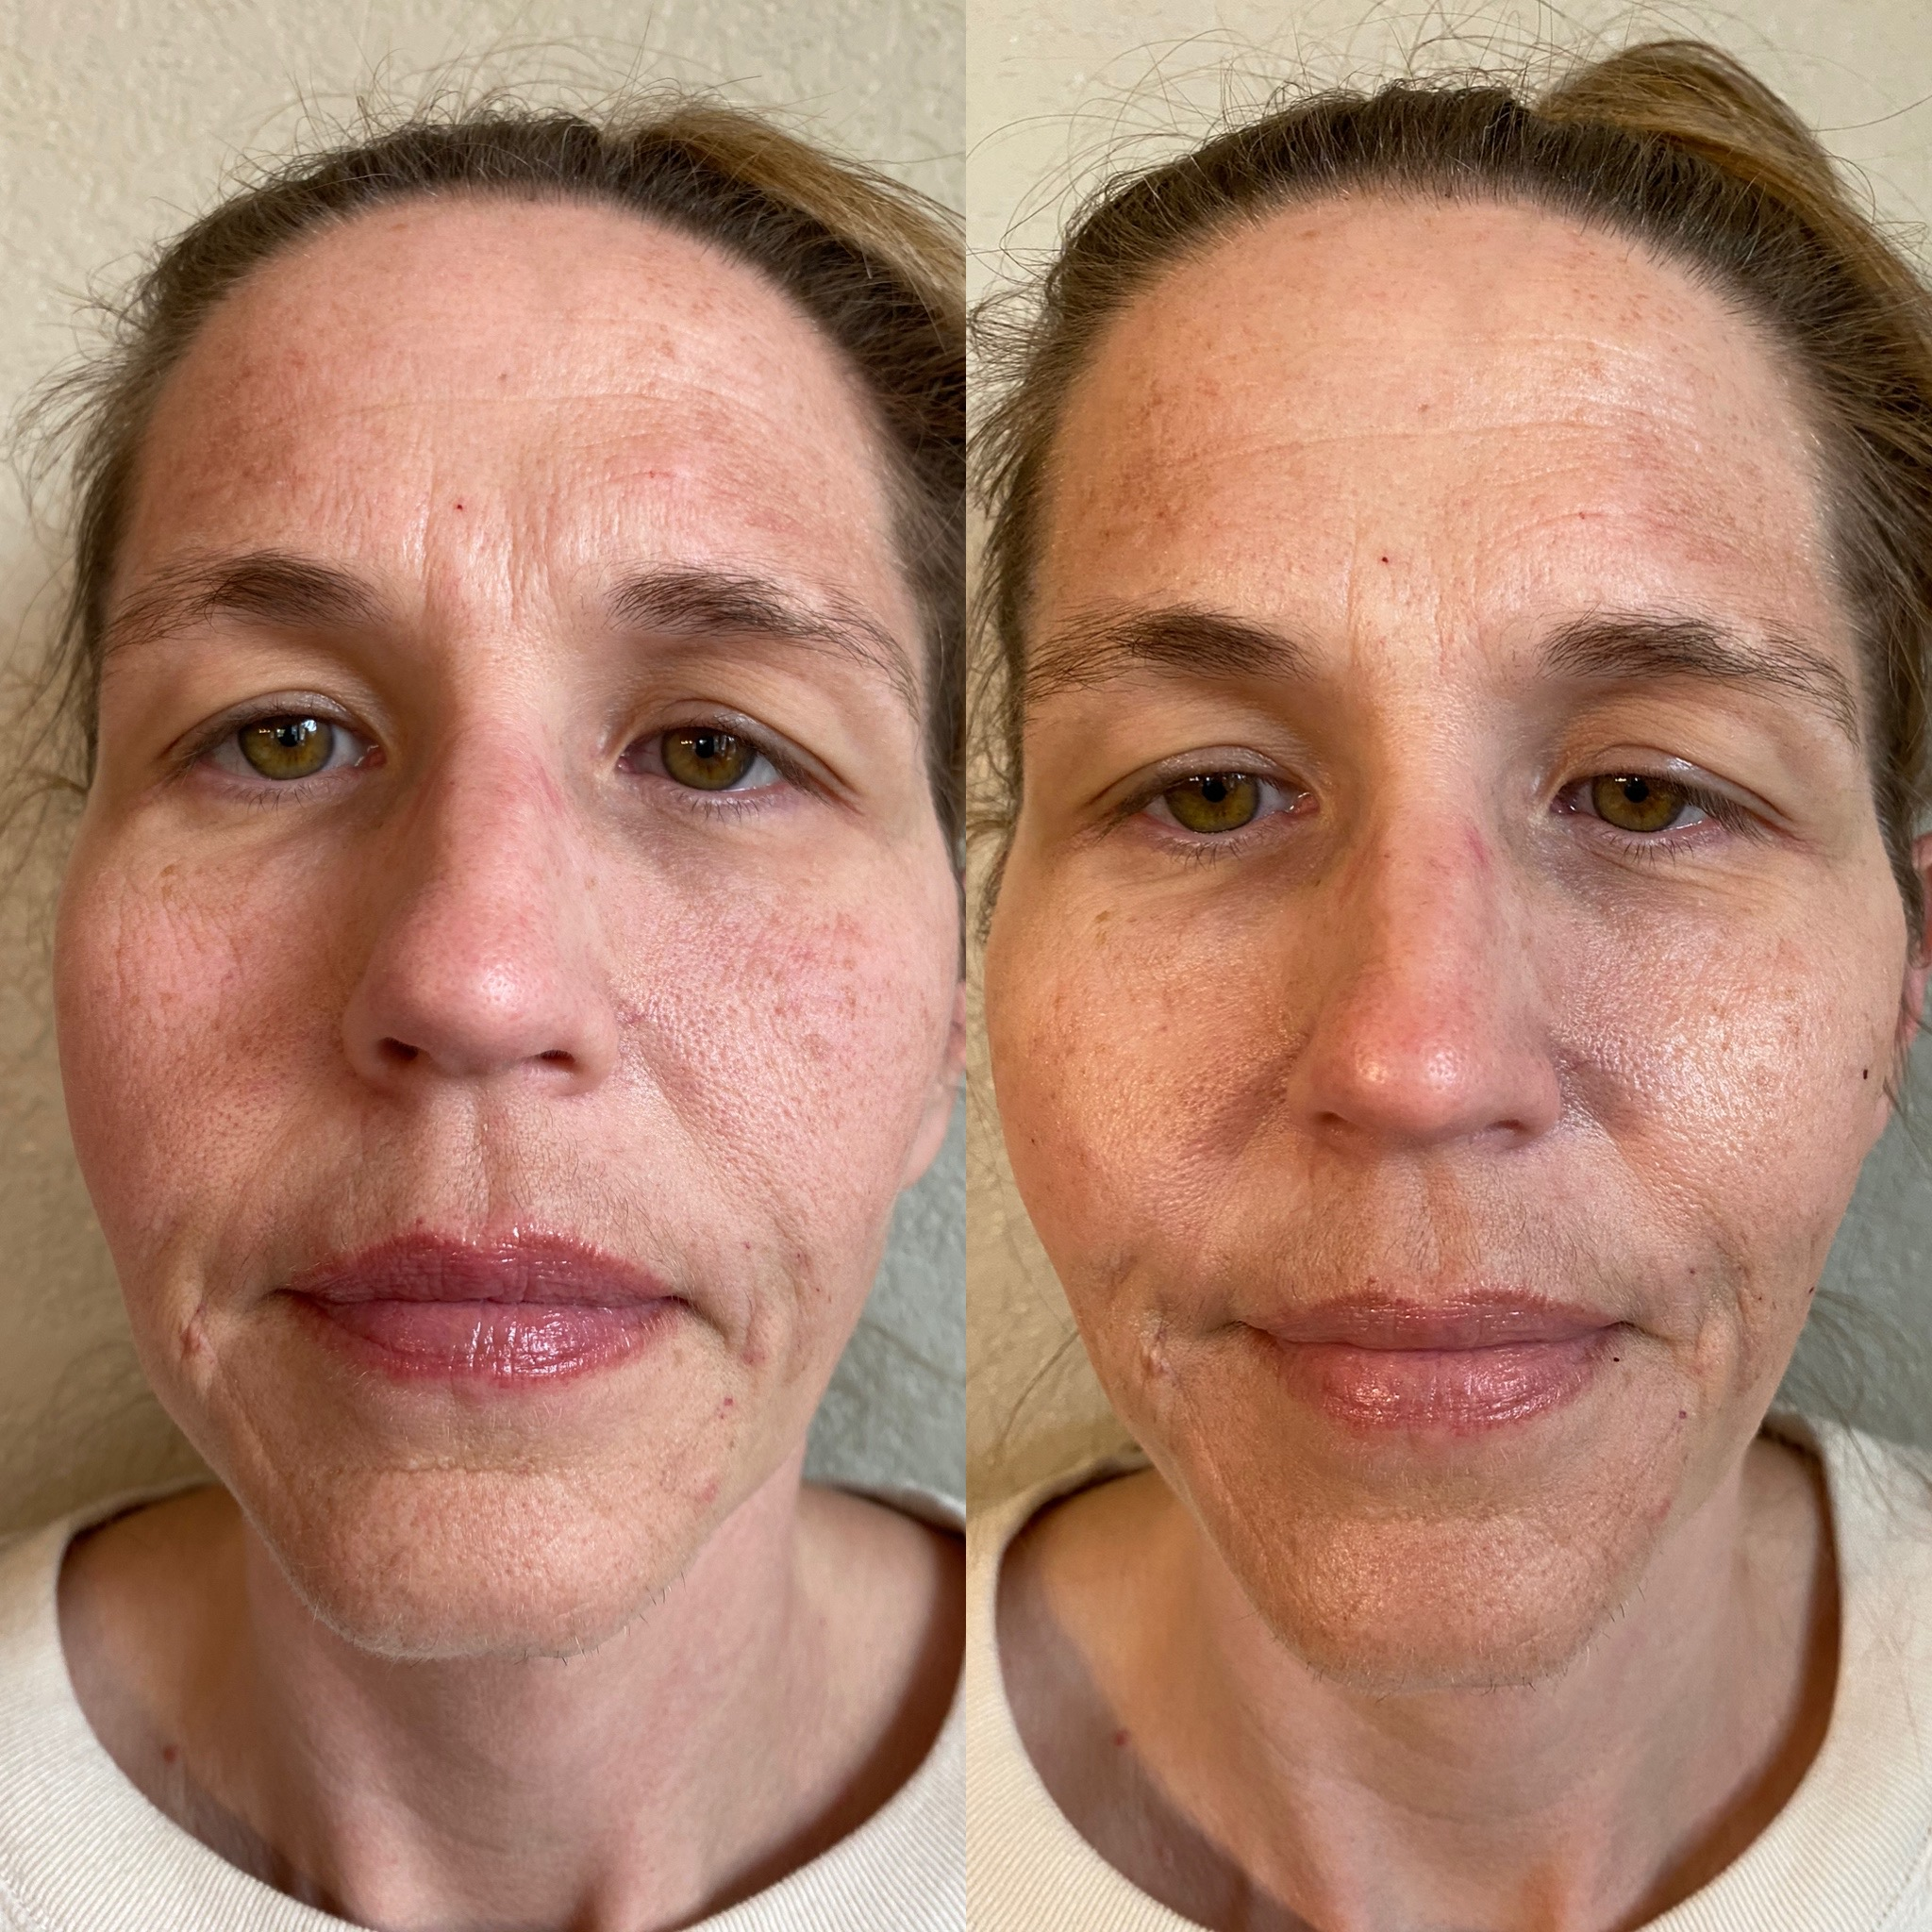 Chin & Mud Face Filler Before After 1